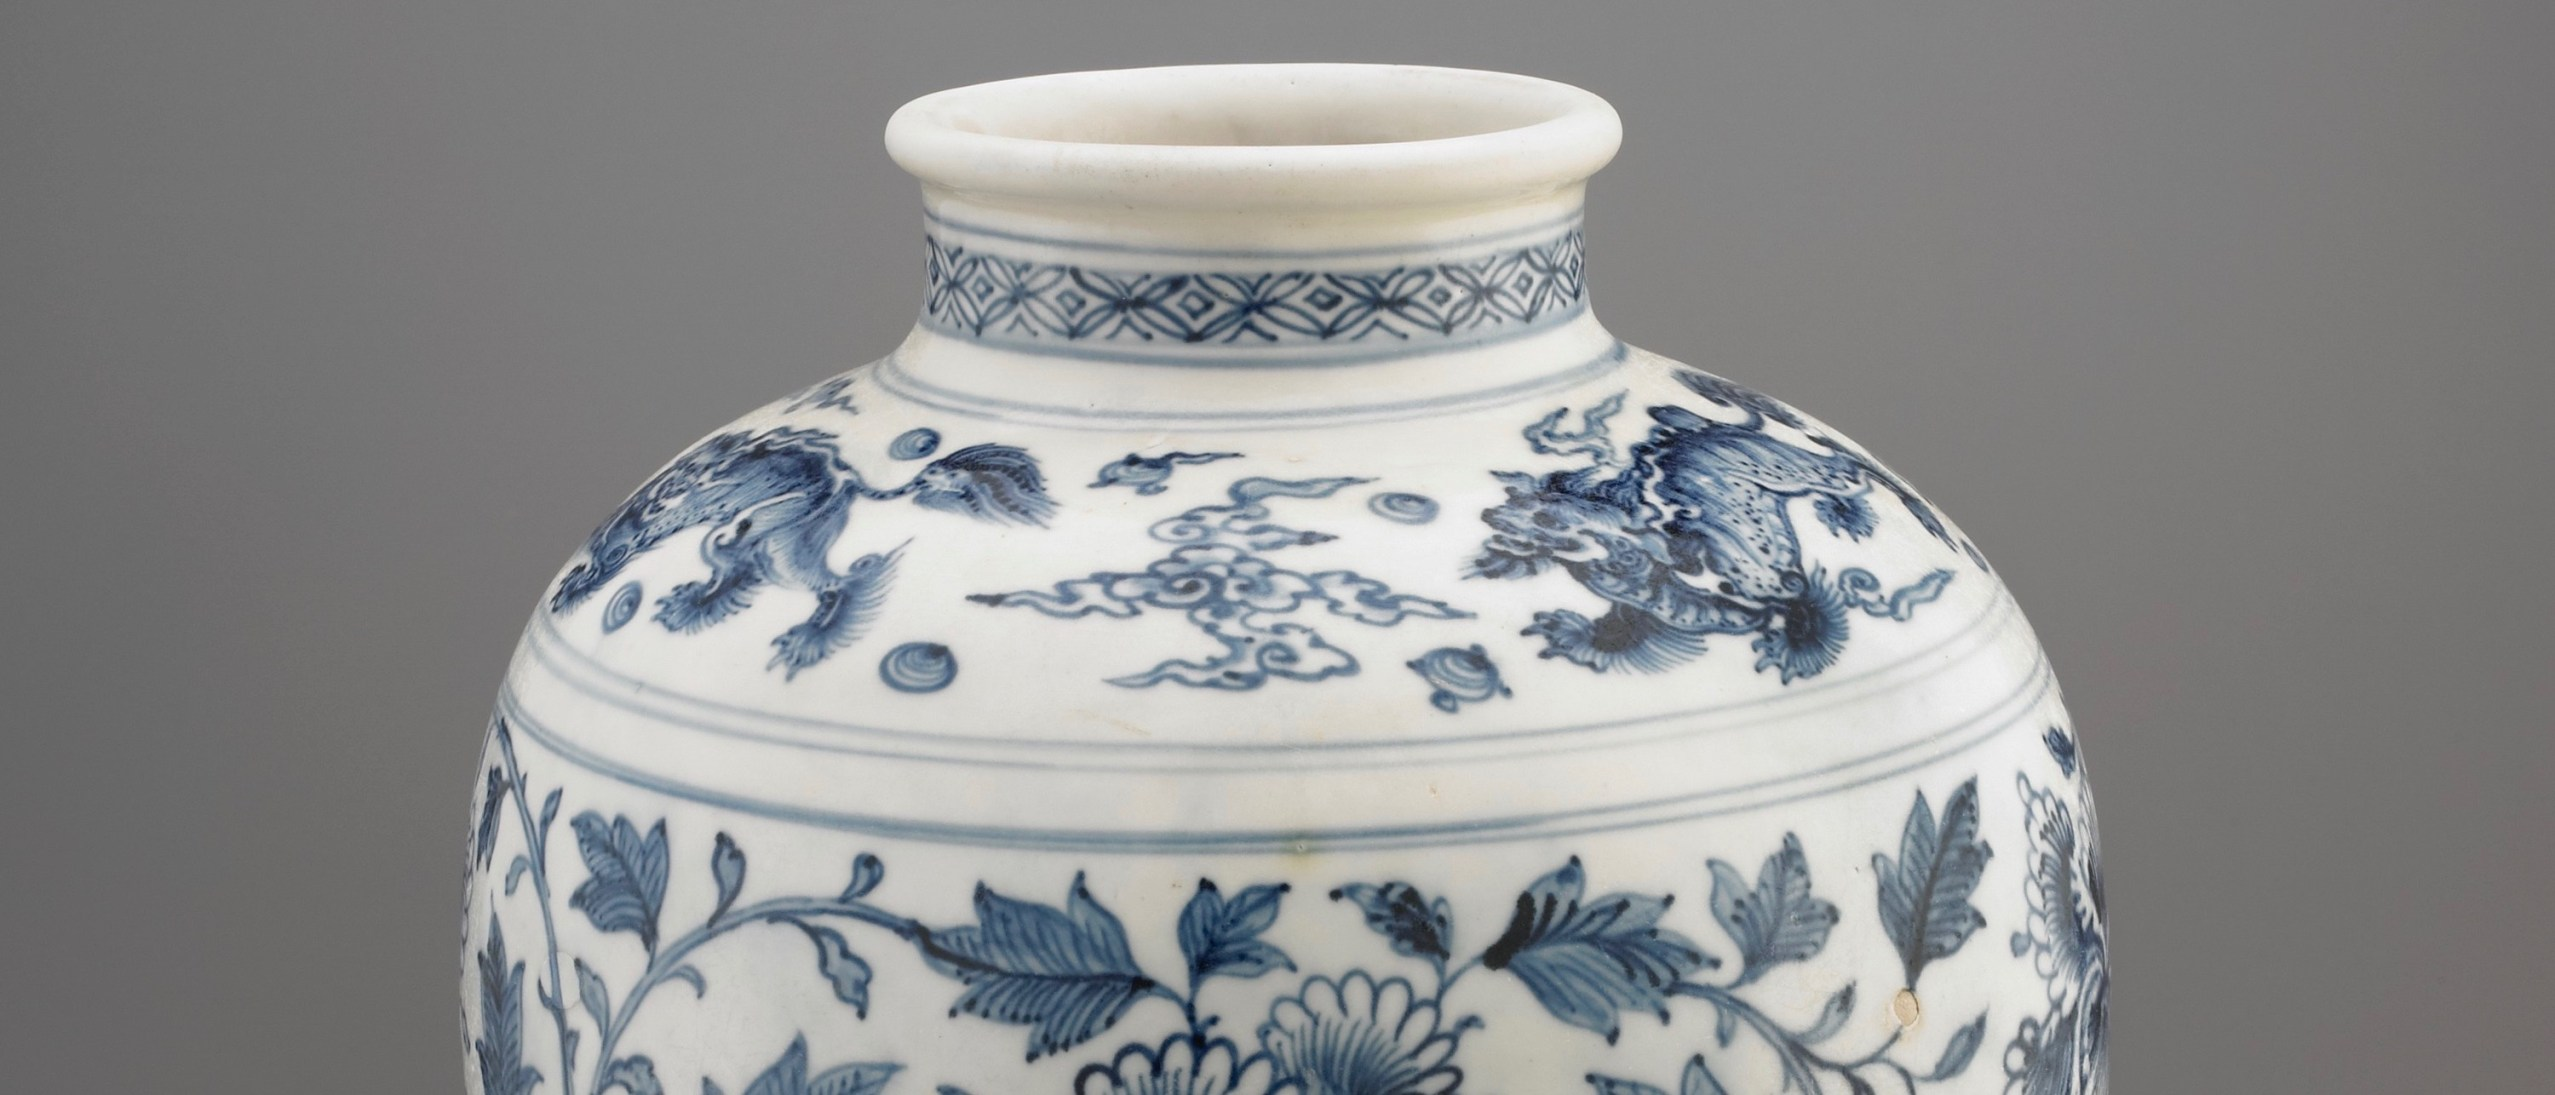 White stone jar decorated with flowers and mythical beasts, painted with cobalt (blue) pigment